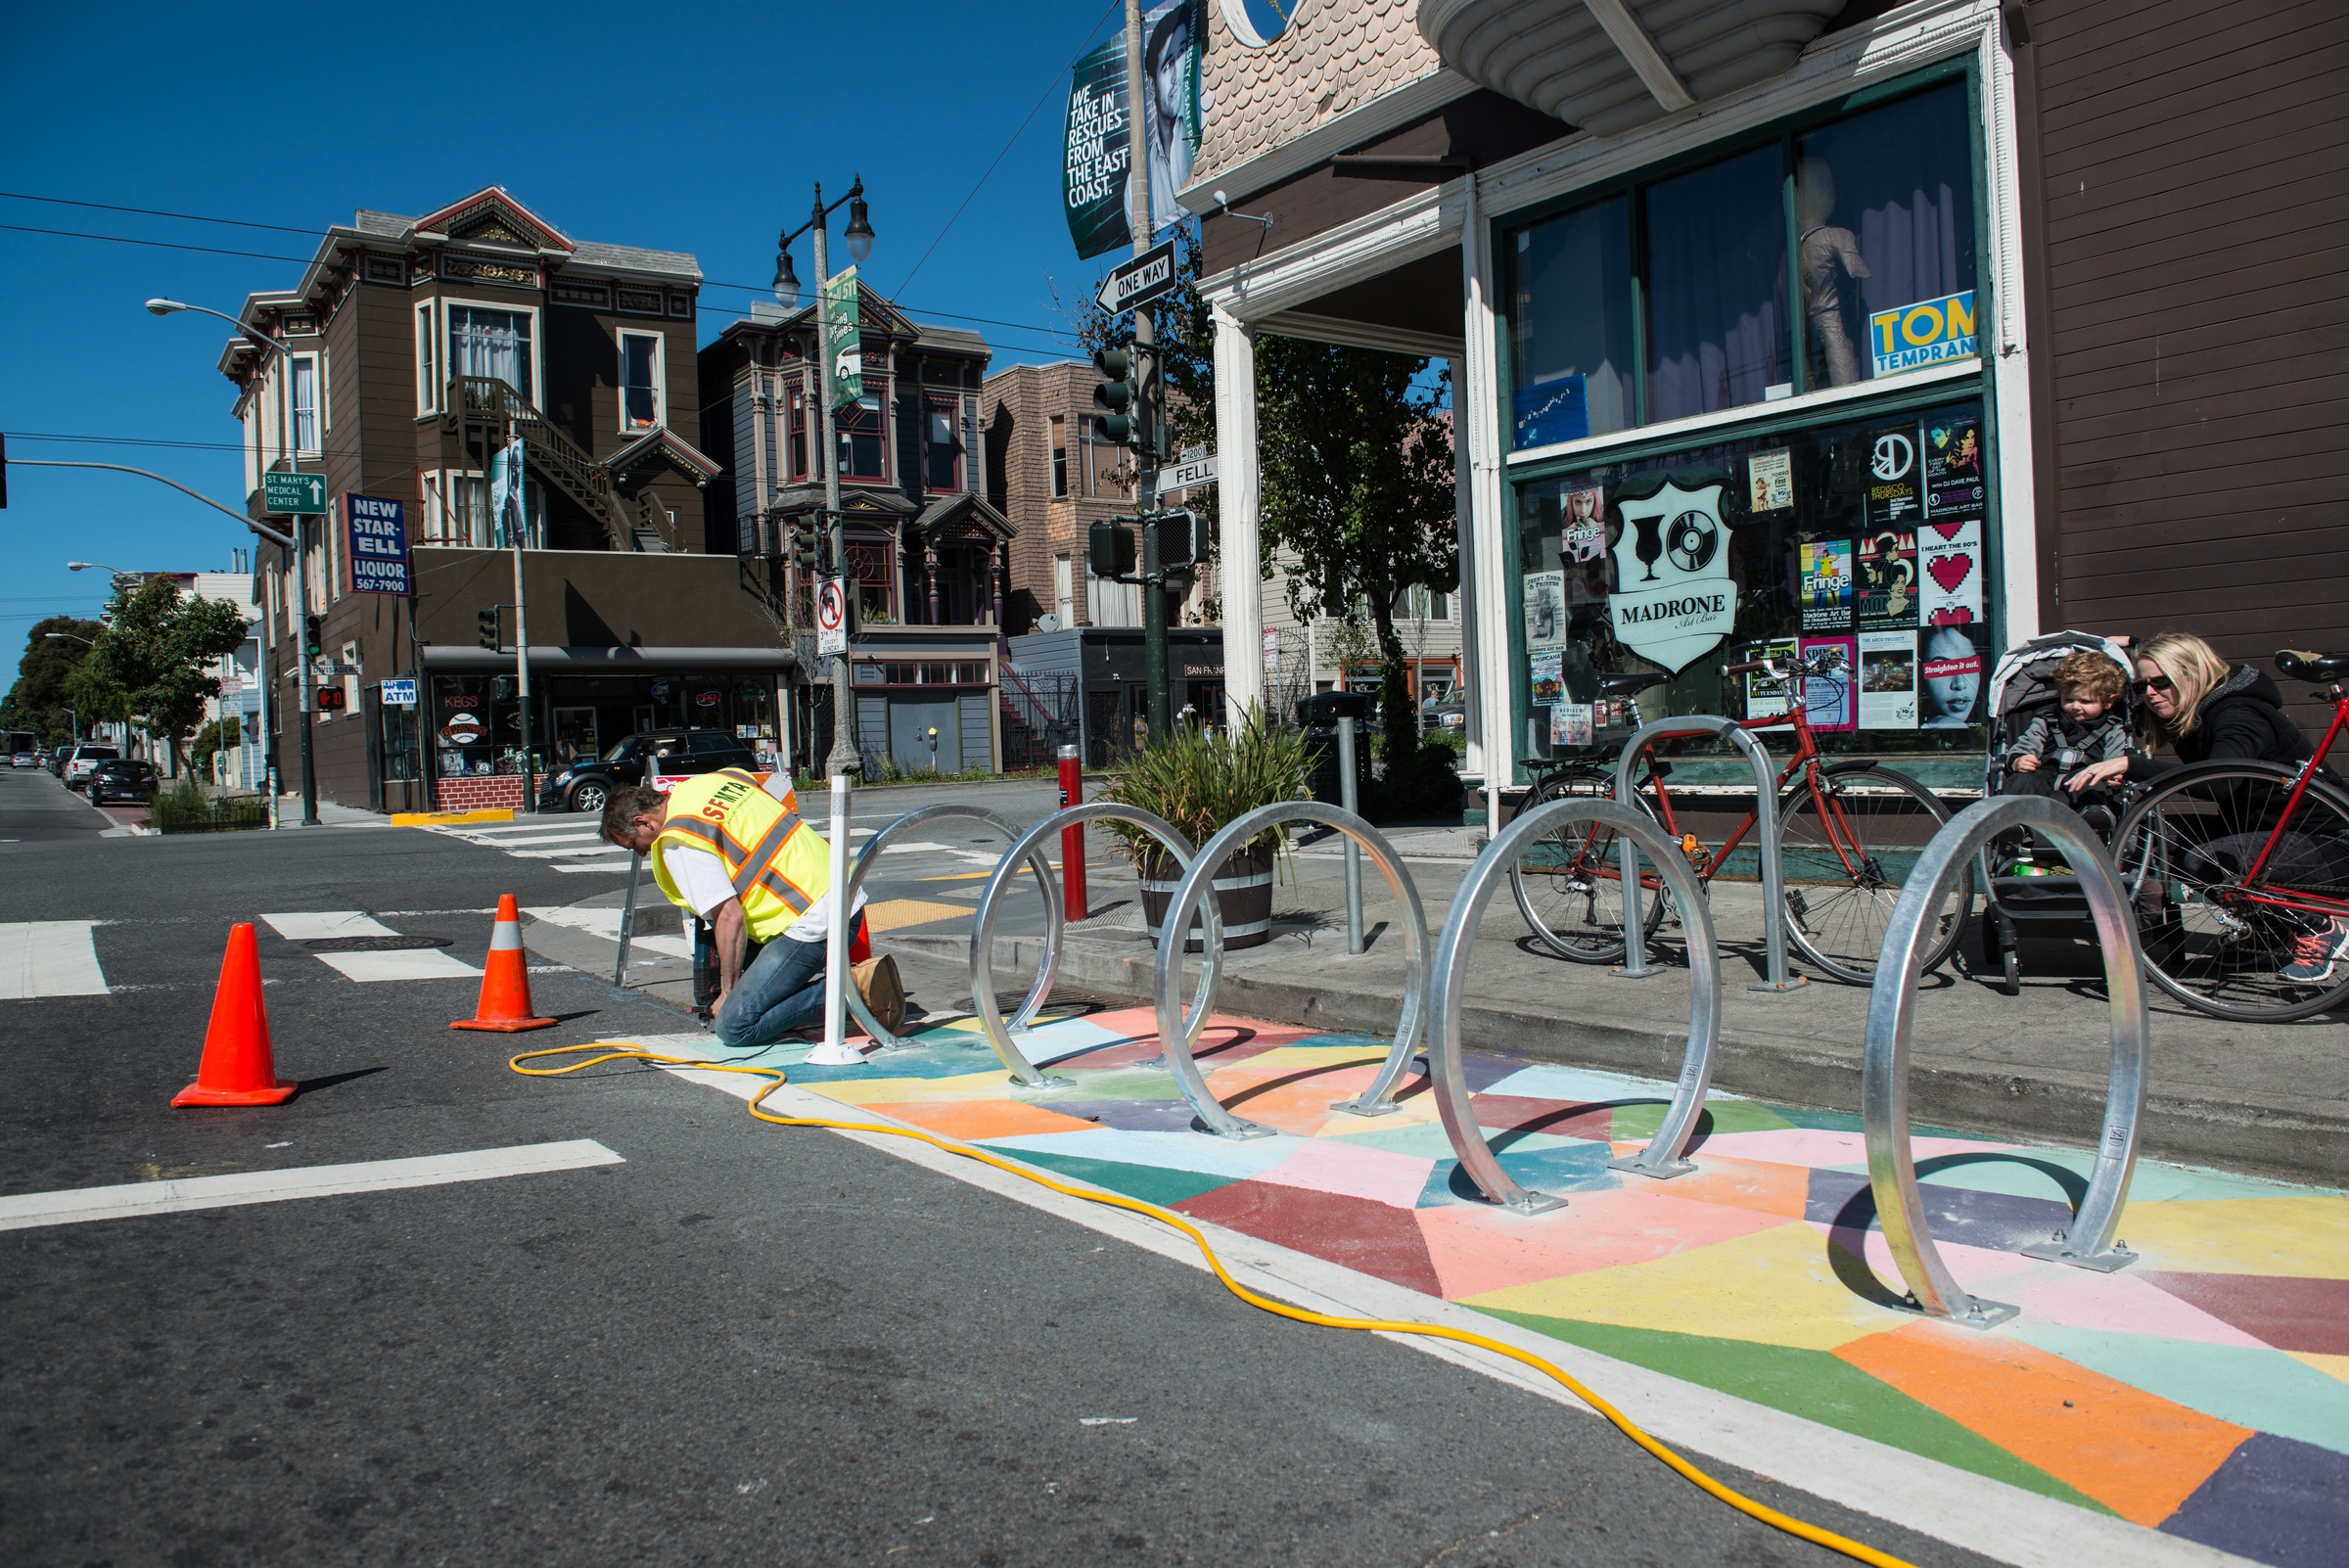 MTA worker installing new circular bike rack above newly painted geometric street mural during the day